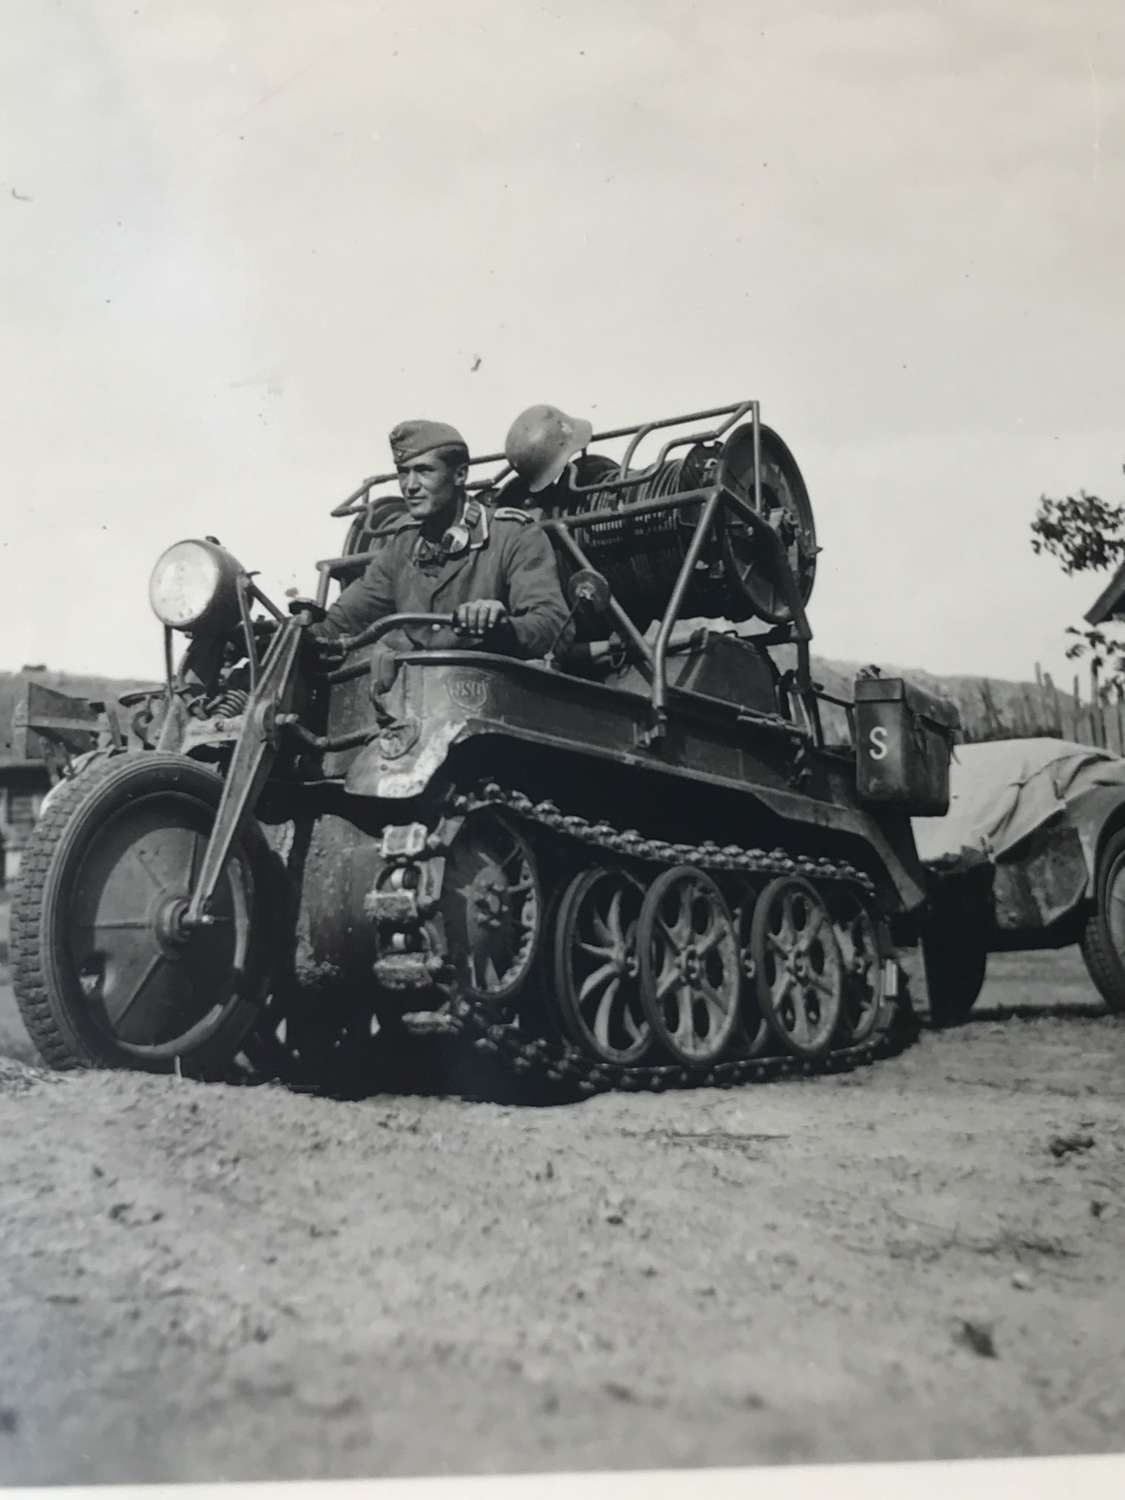 Photograph of kettenkrad in action